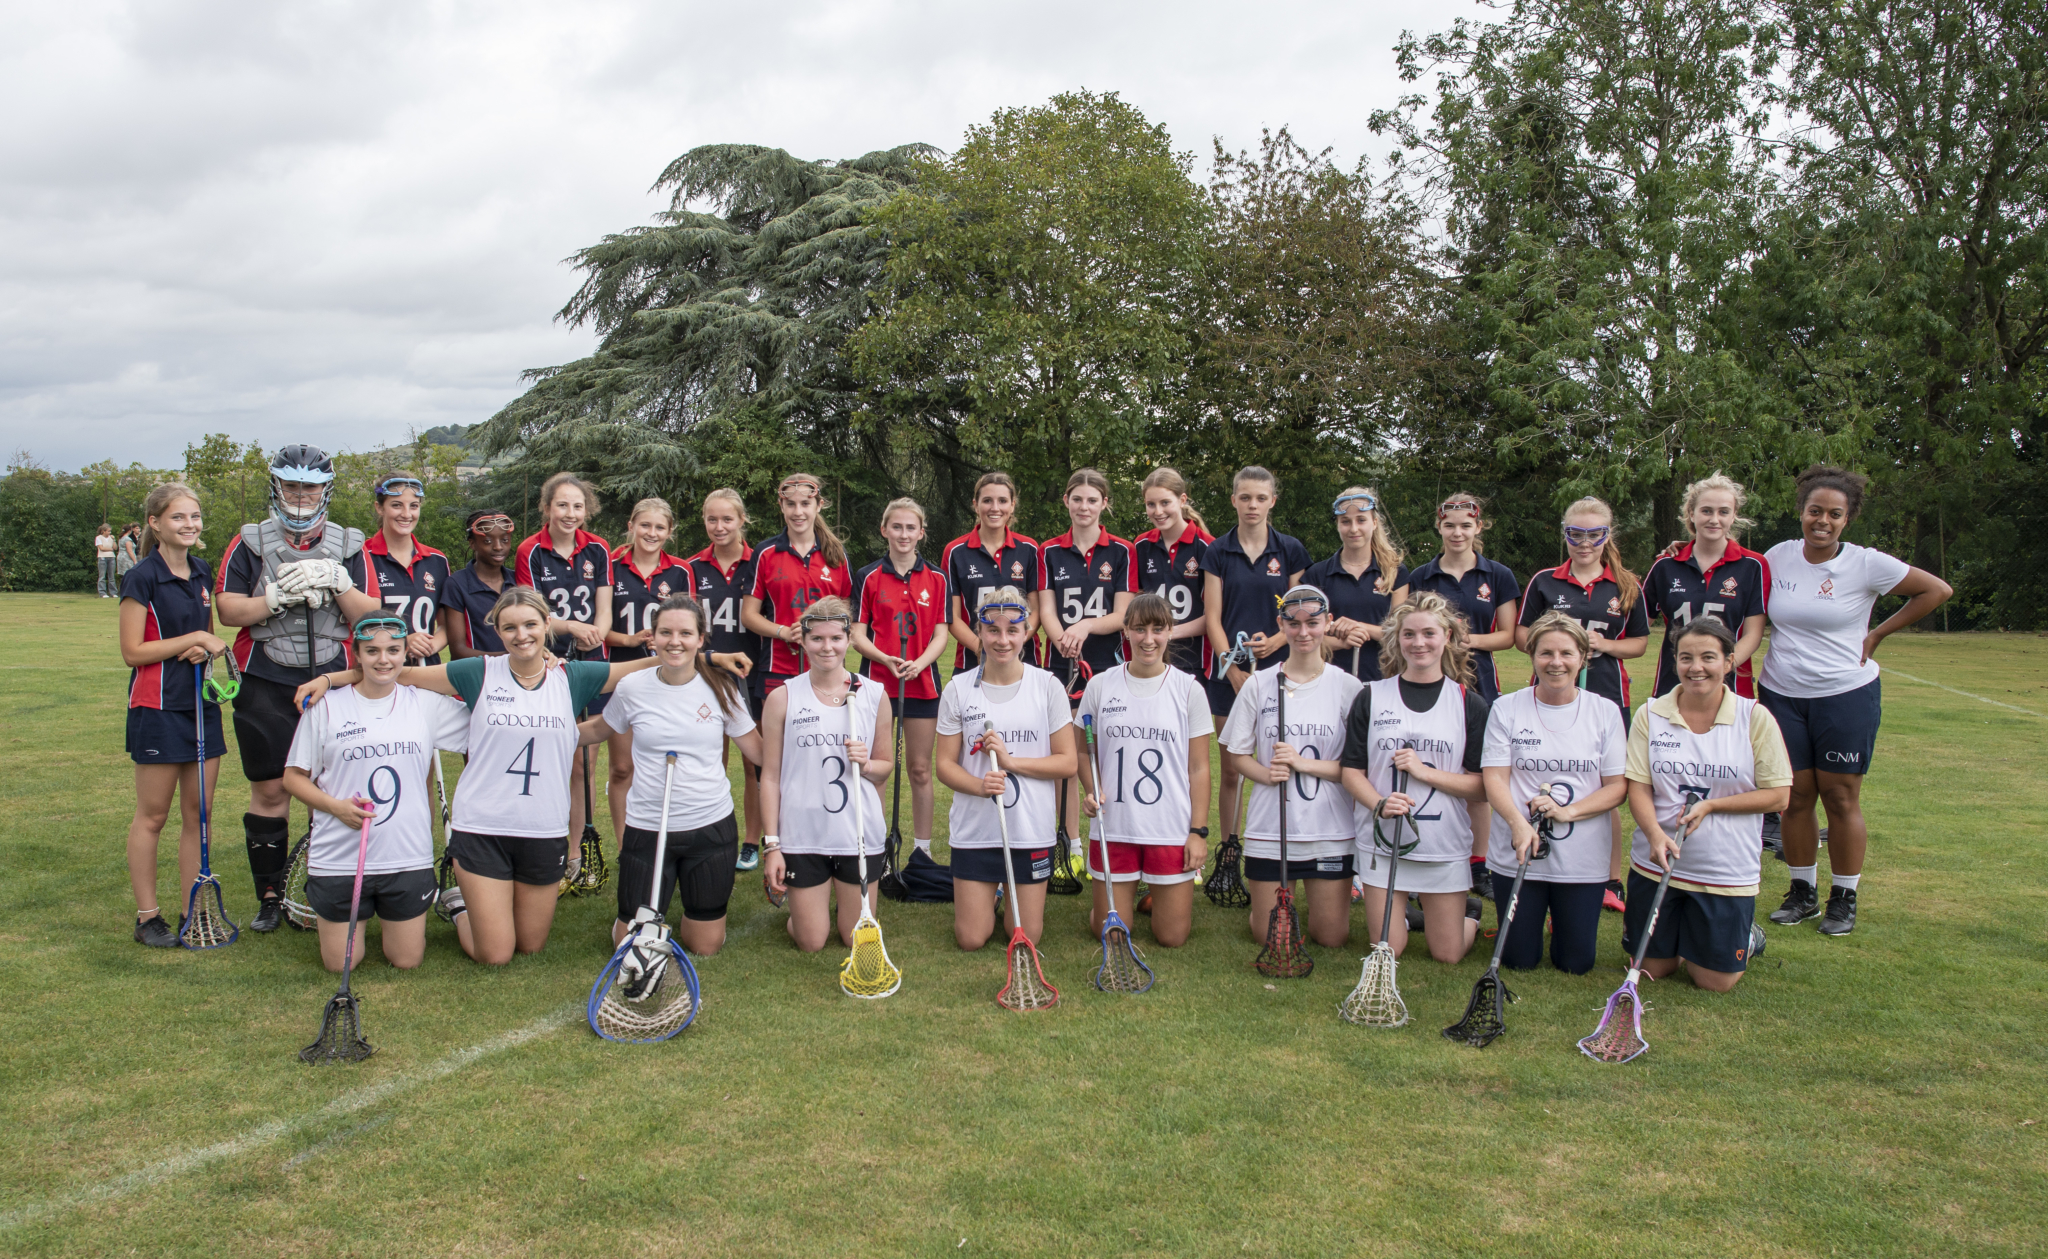 2021 09 10 Oga Lax Match Vs Godolphin Combined Team Photo Without Label